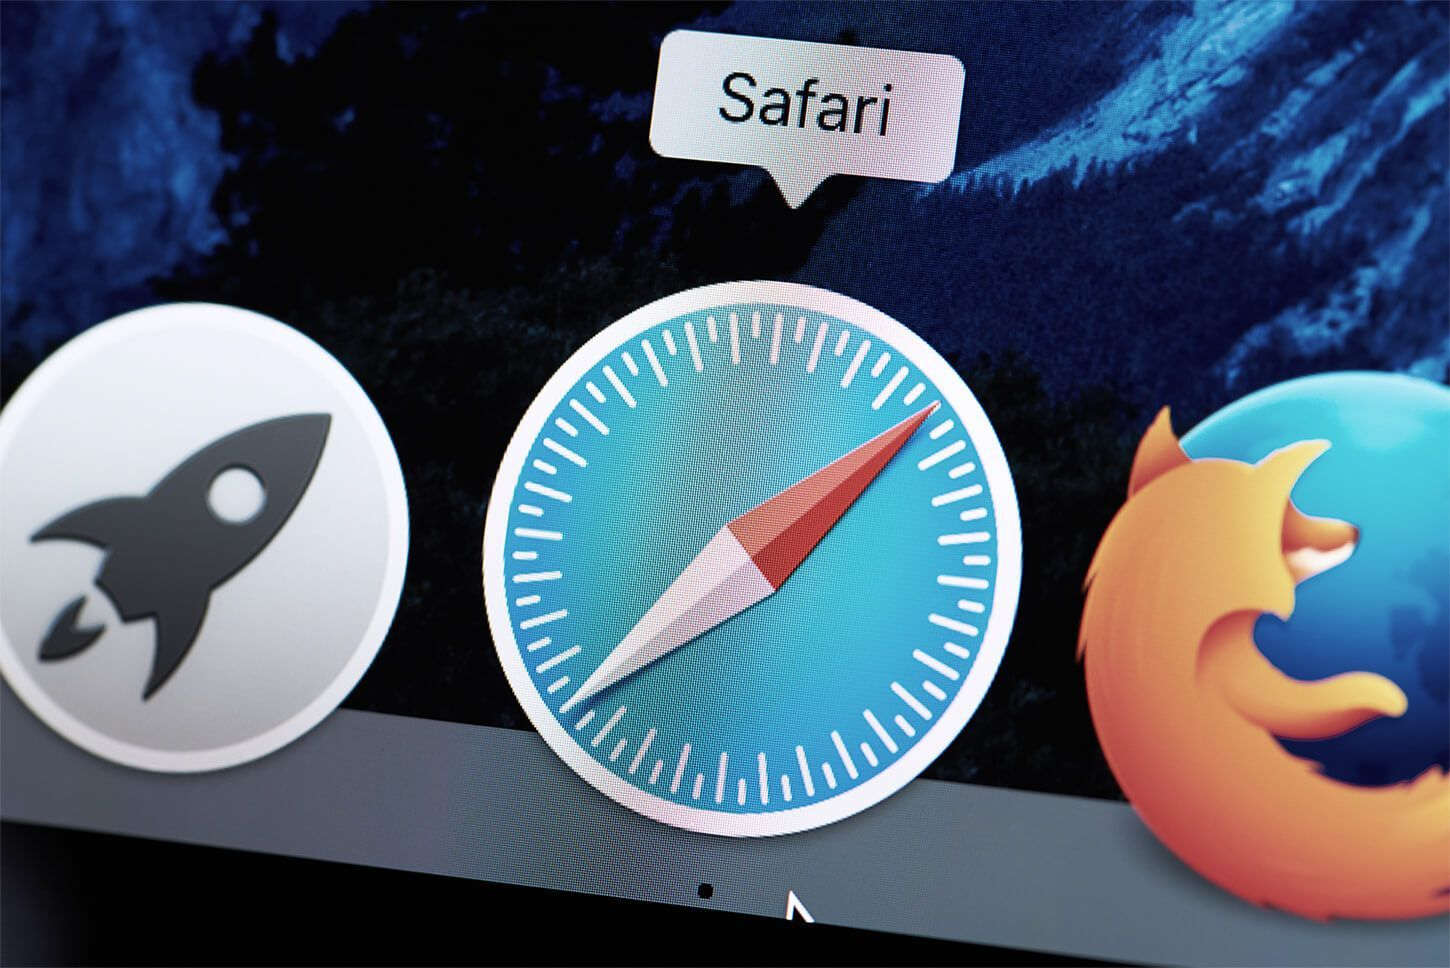 How to install extension for Safari